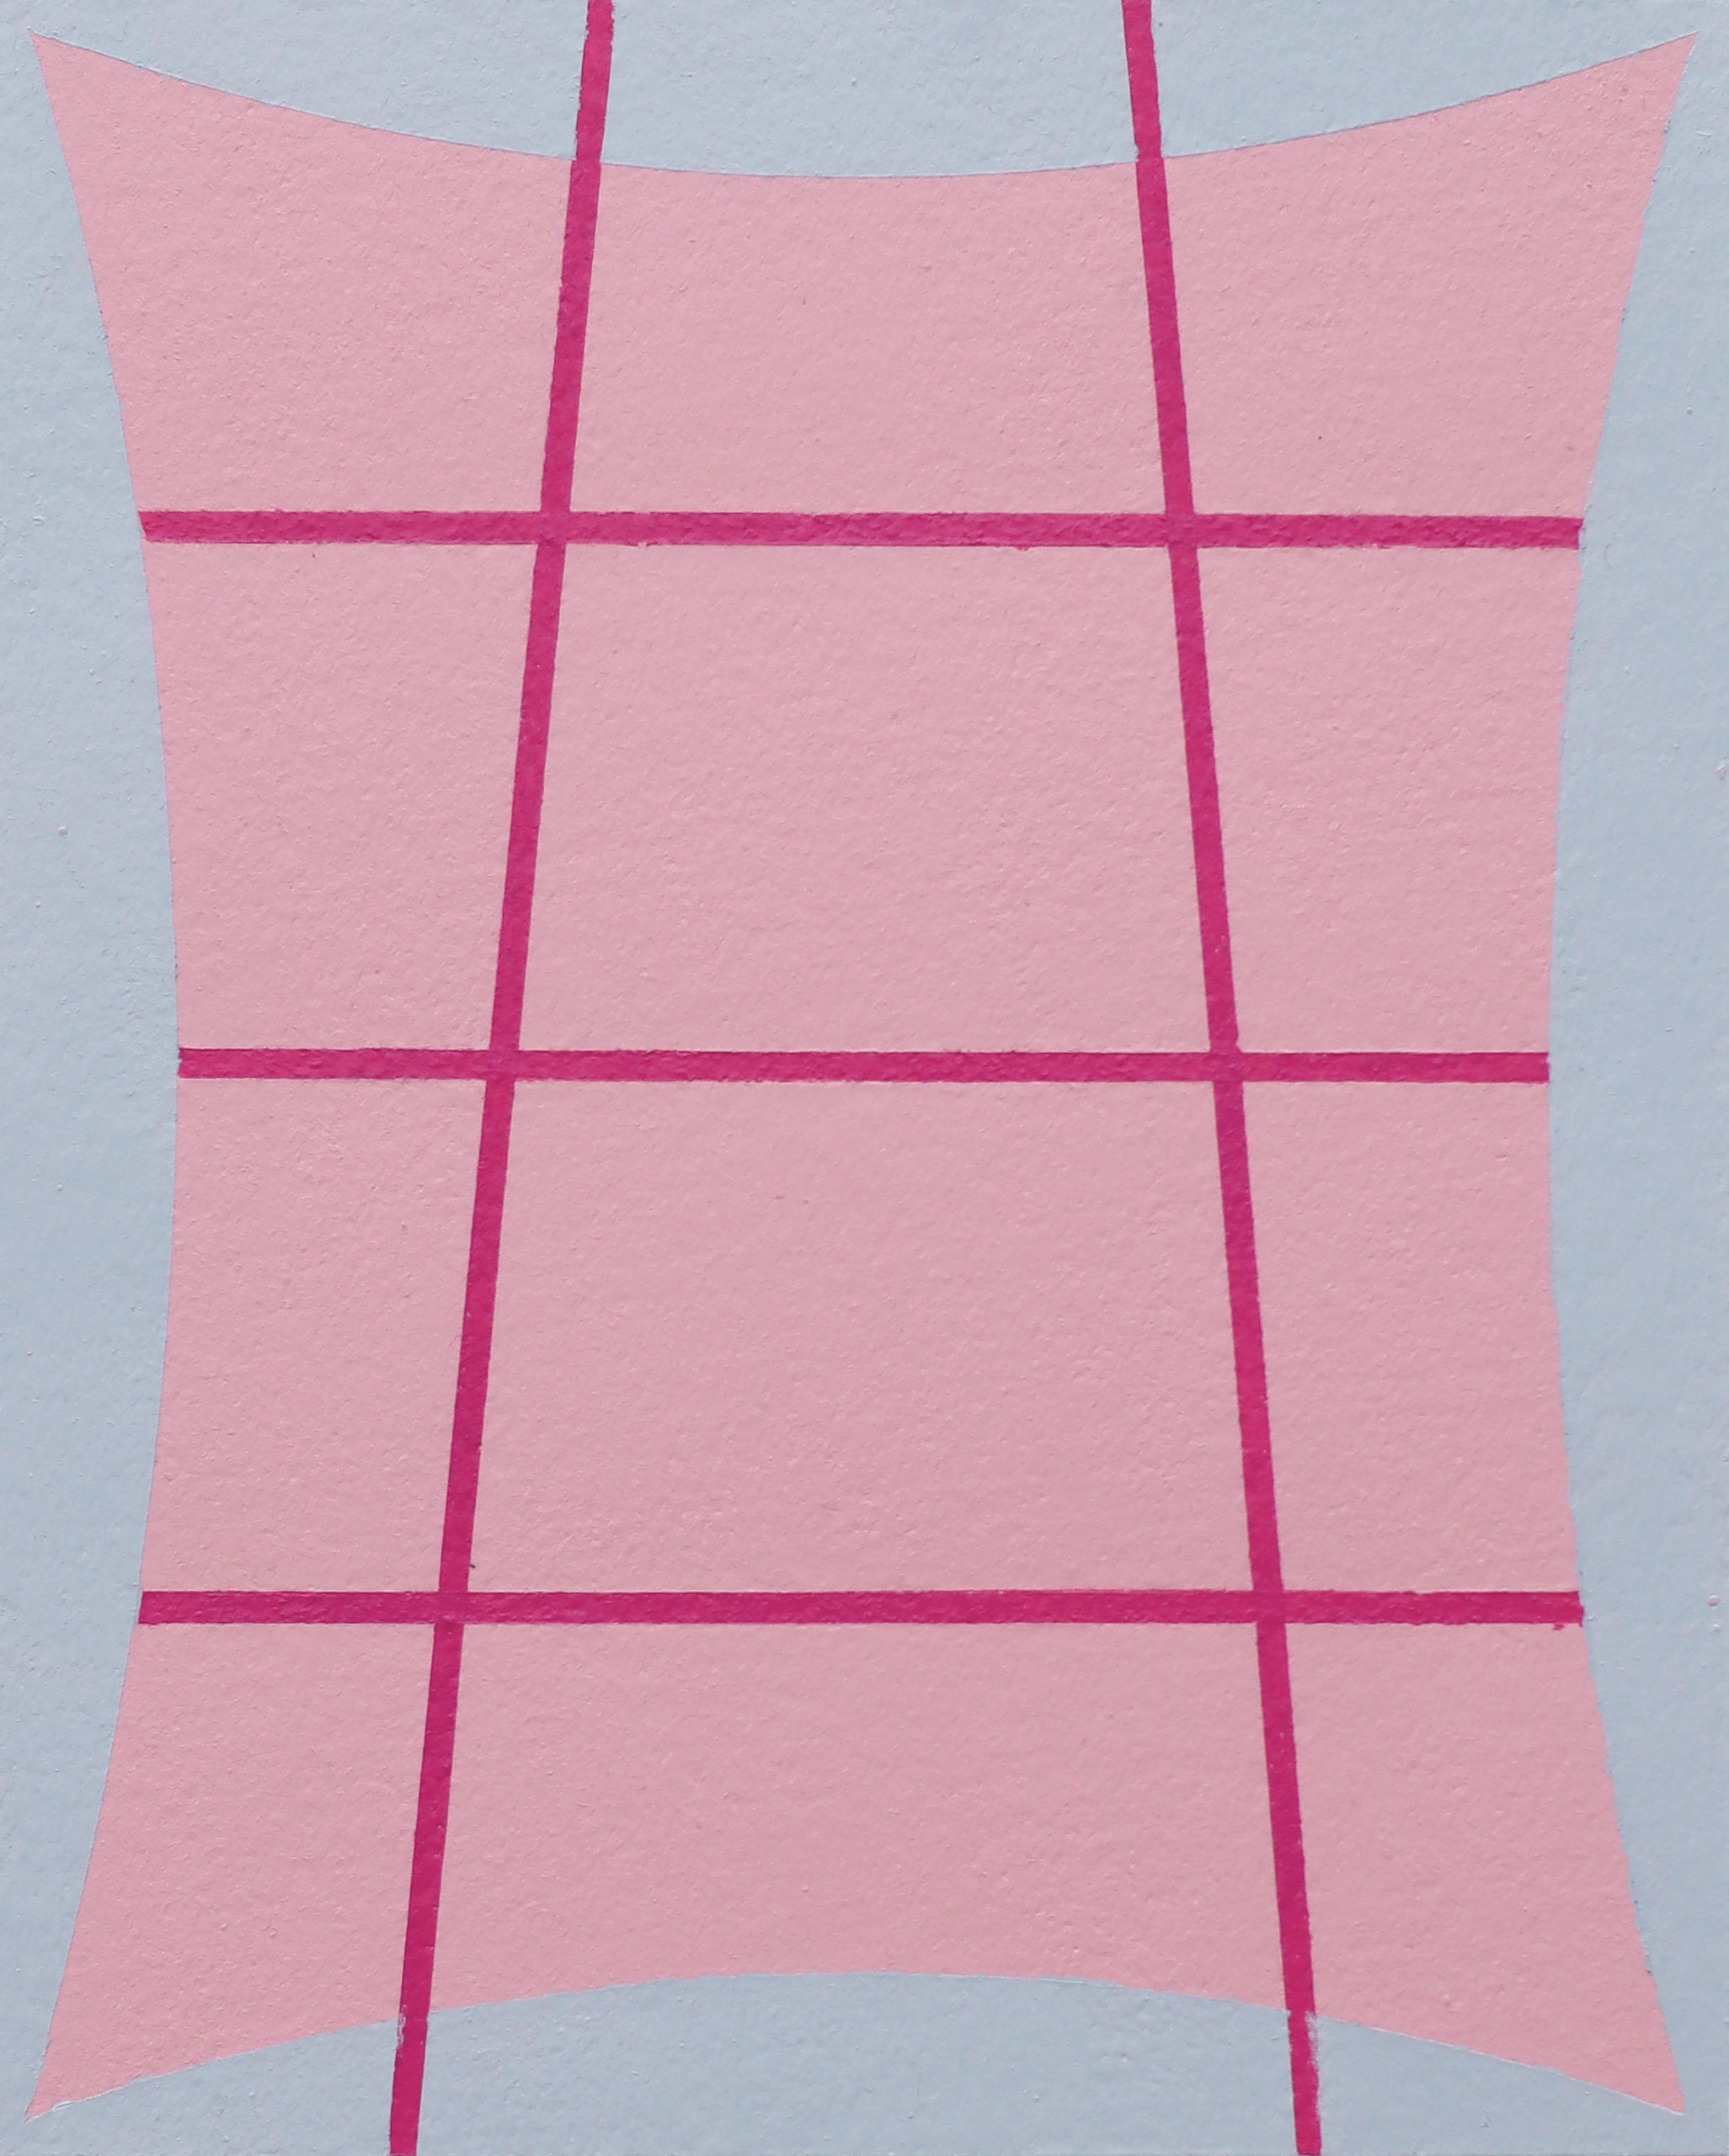 Untitled (Grey Pink Red)